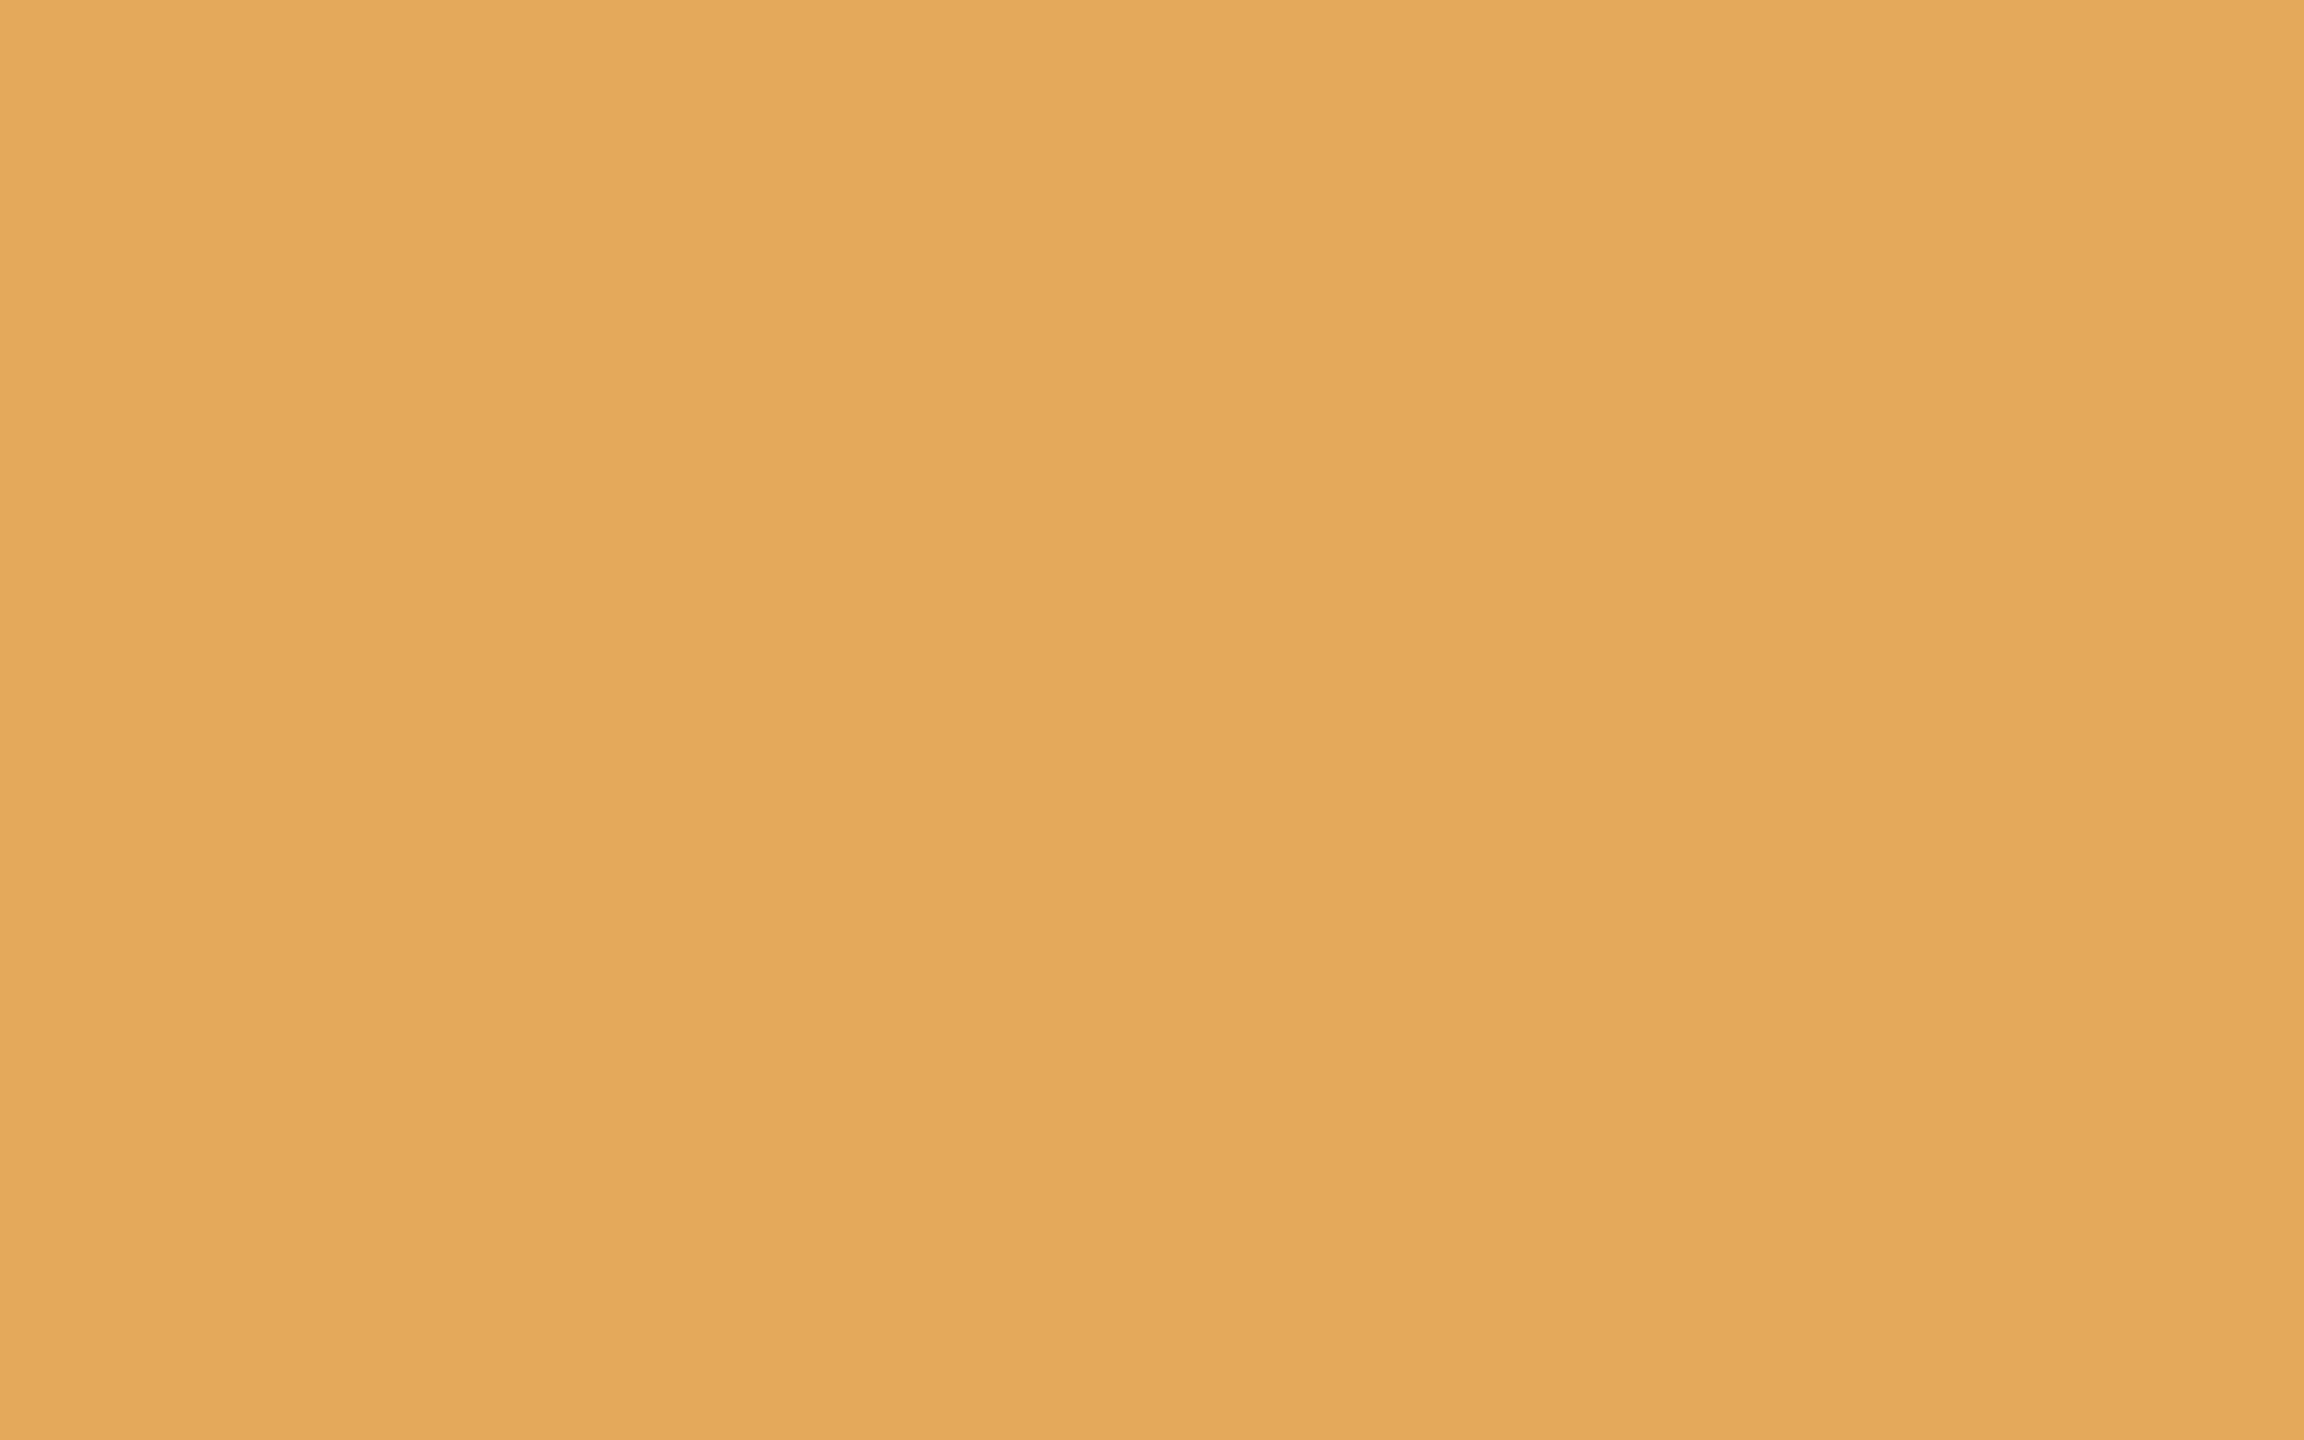 2304x1440 Indian Yellow Solid Color Background